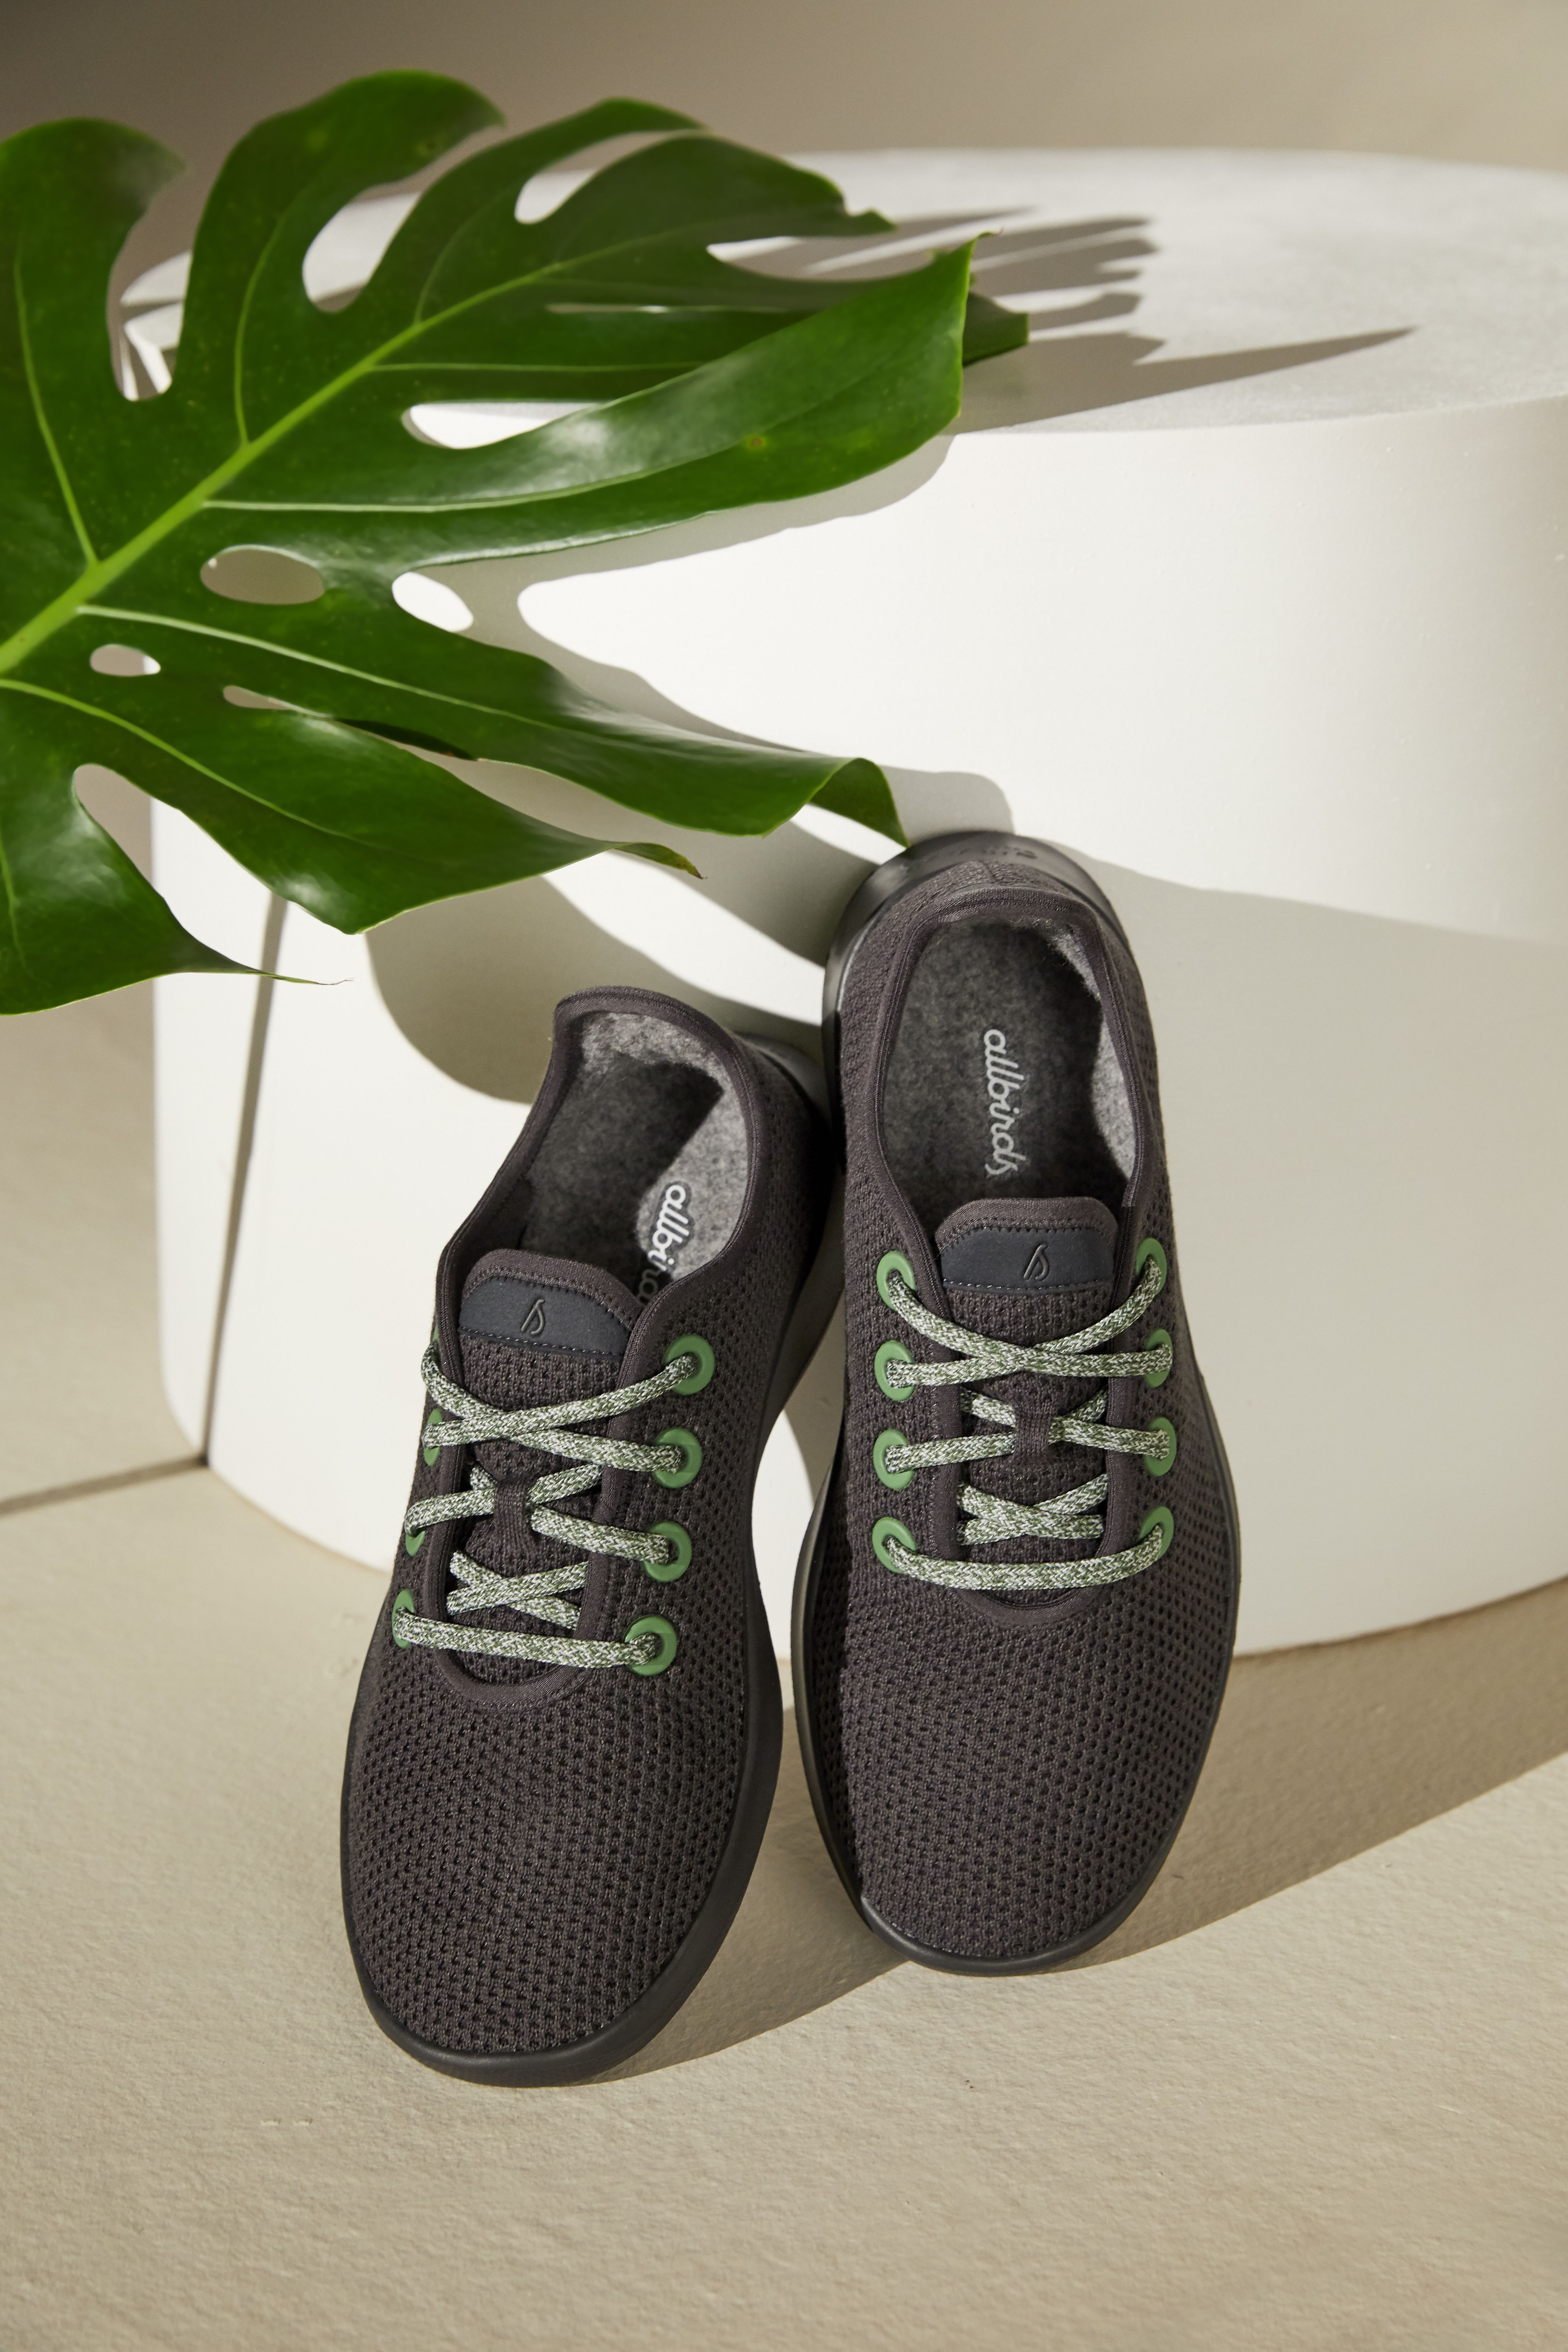 New Allbirds Sneakers Are Here Thanks